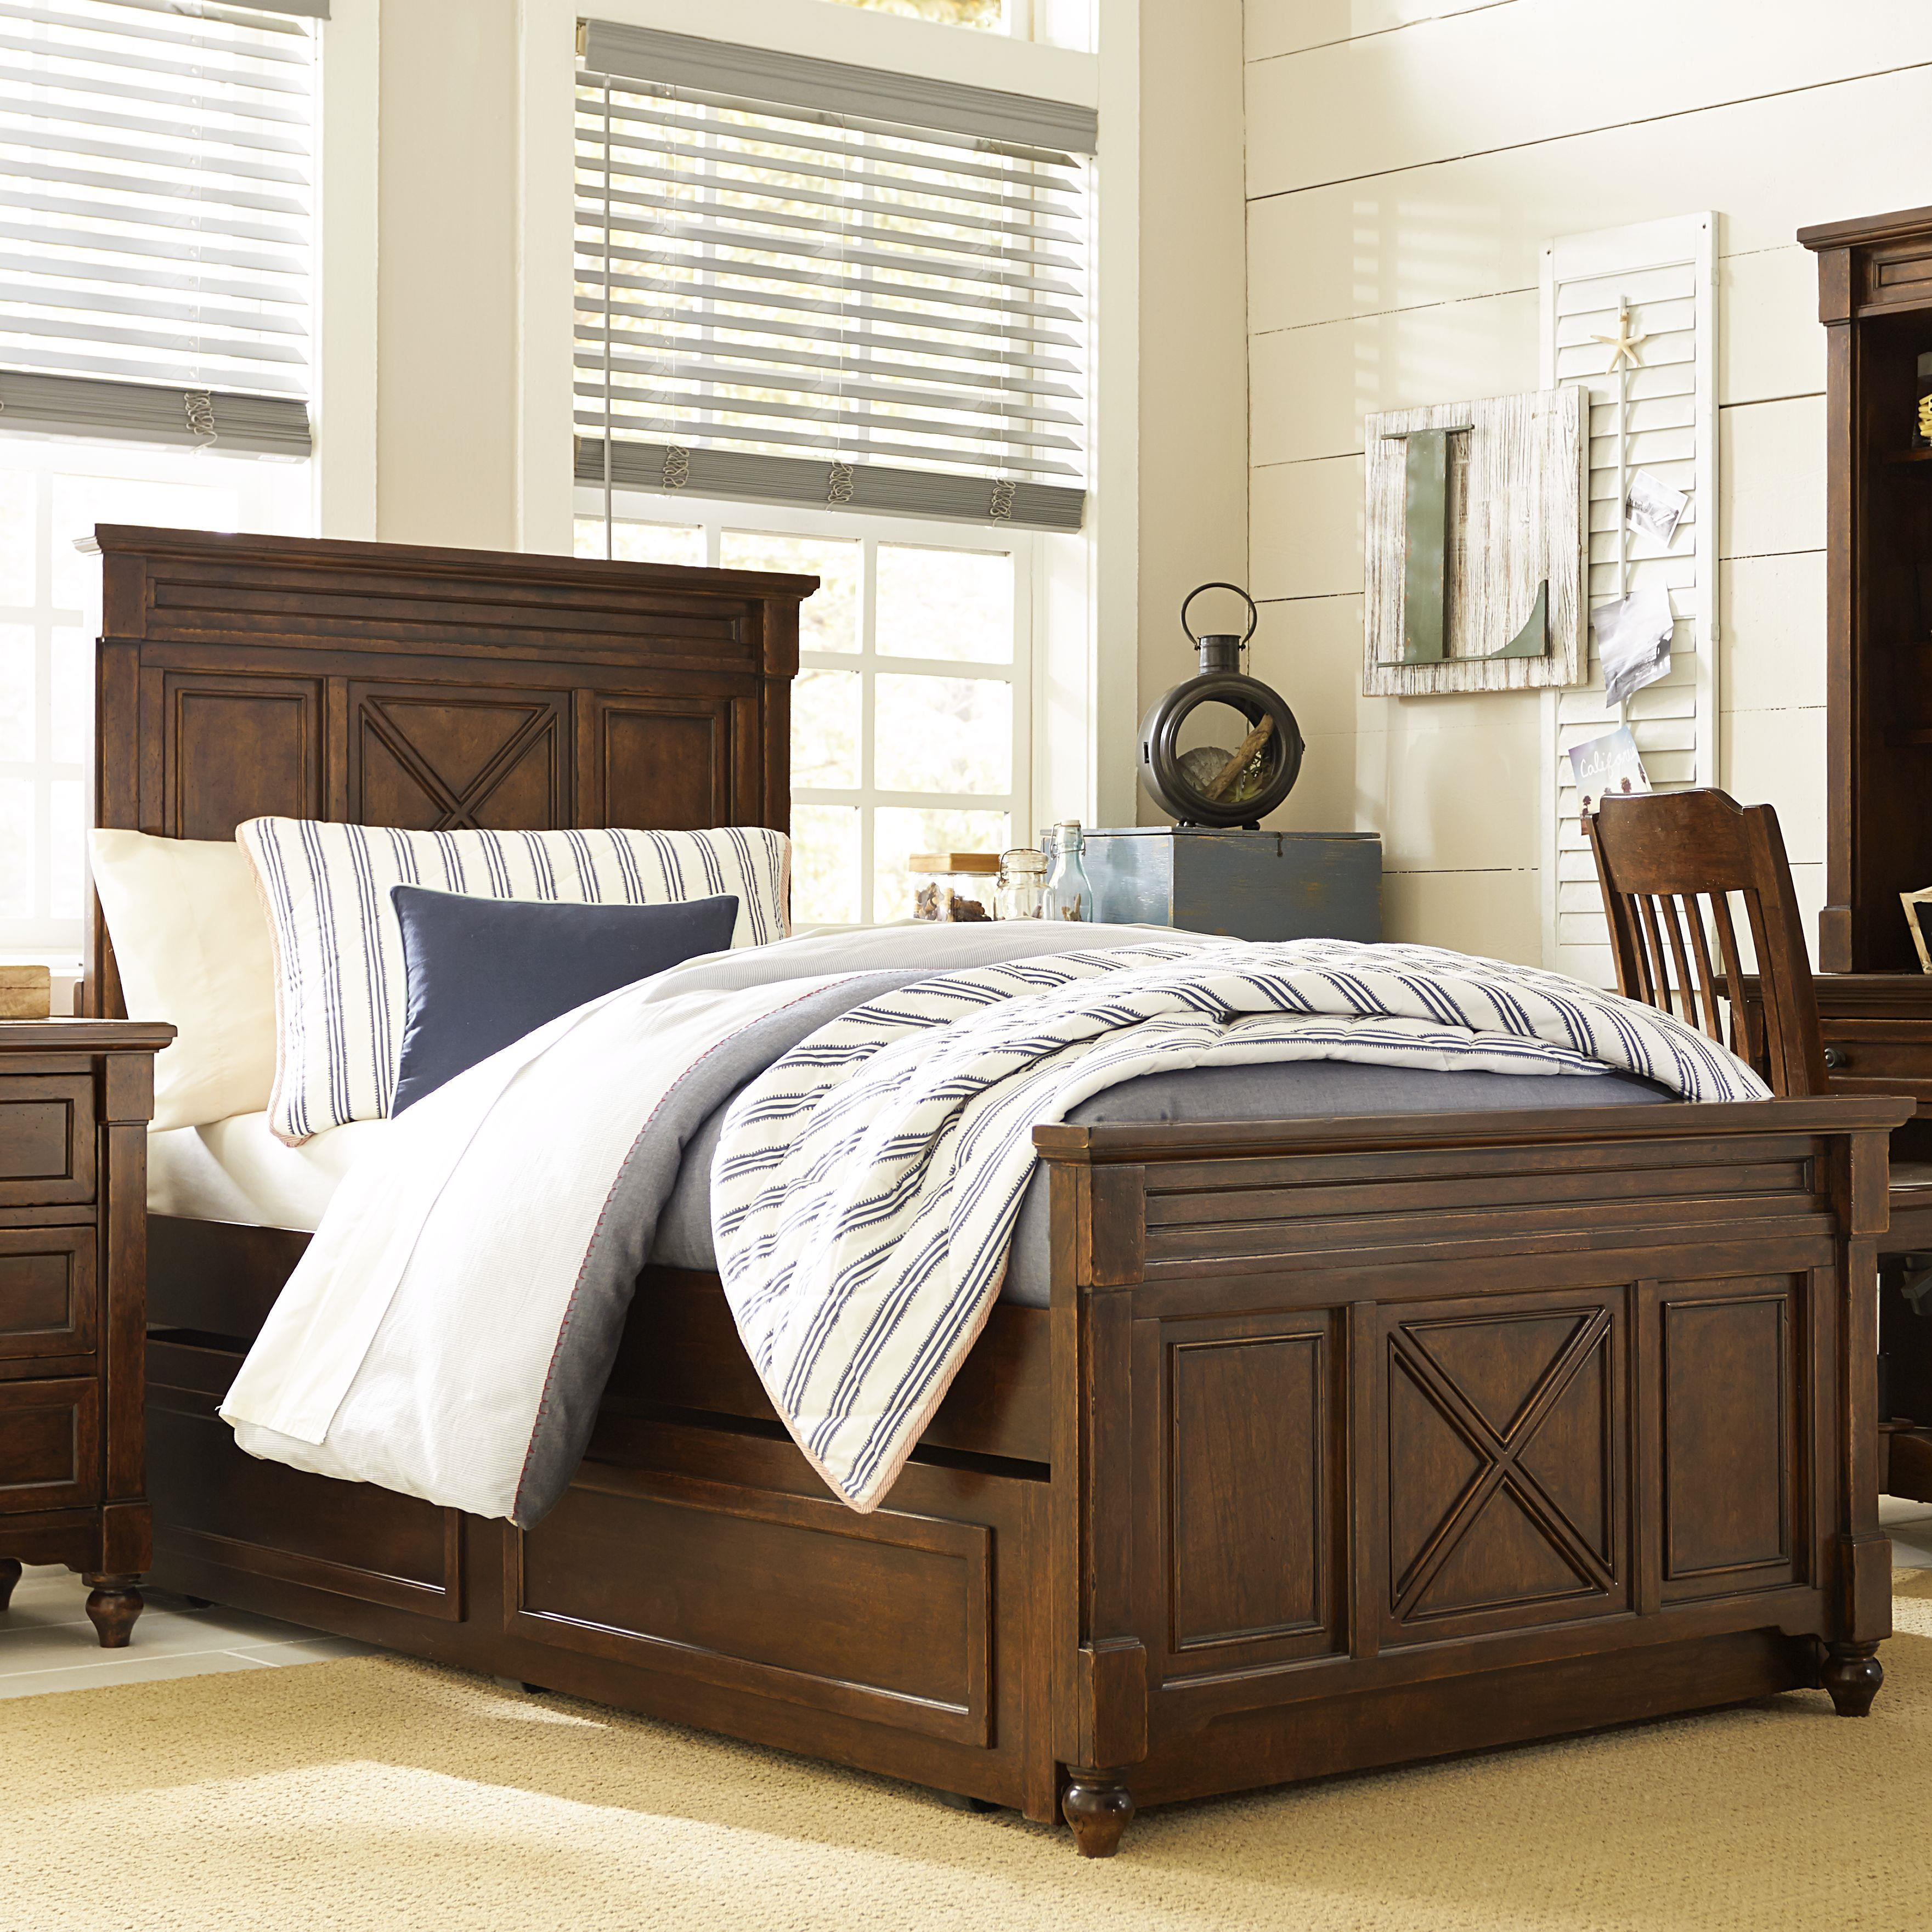 Legacy Classic Kids Big Sur by Wendy Bellissimo Full Panel Bed - Item Number: 4920-4104K+9500